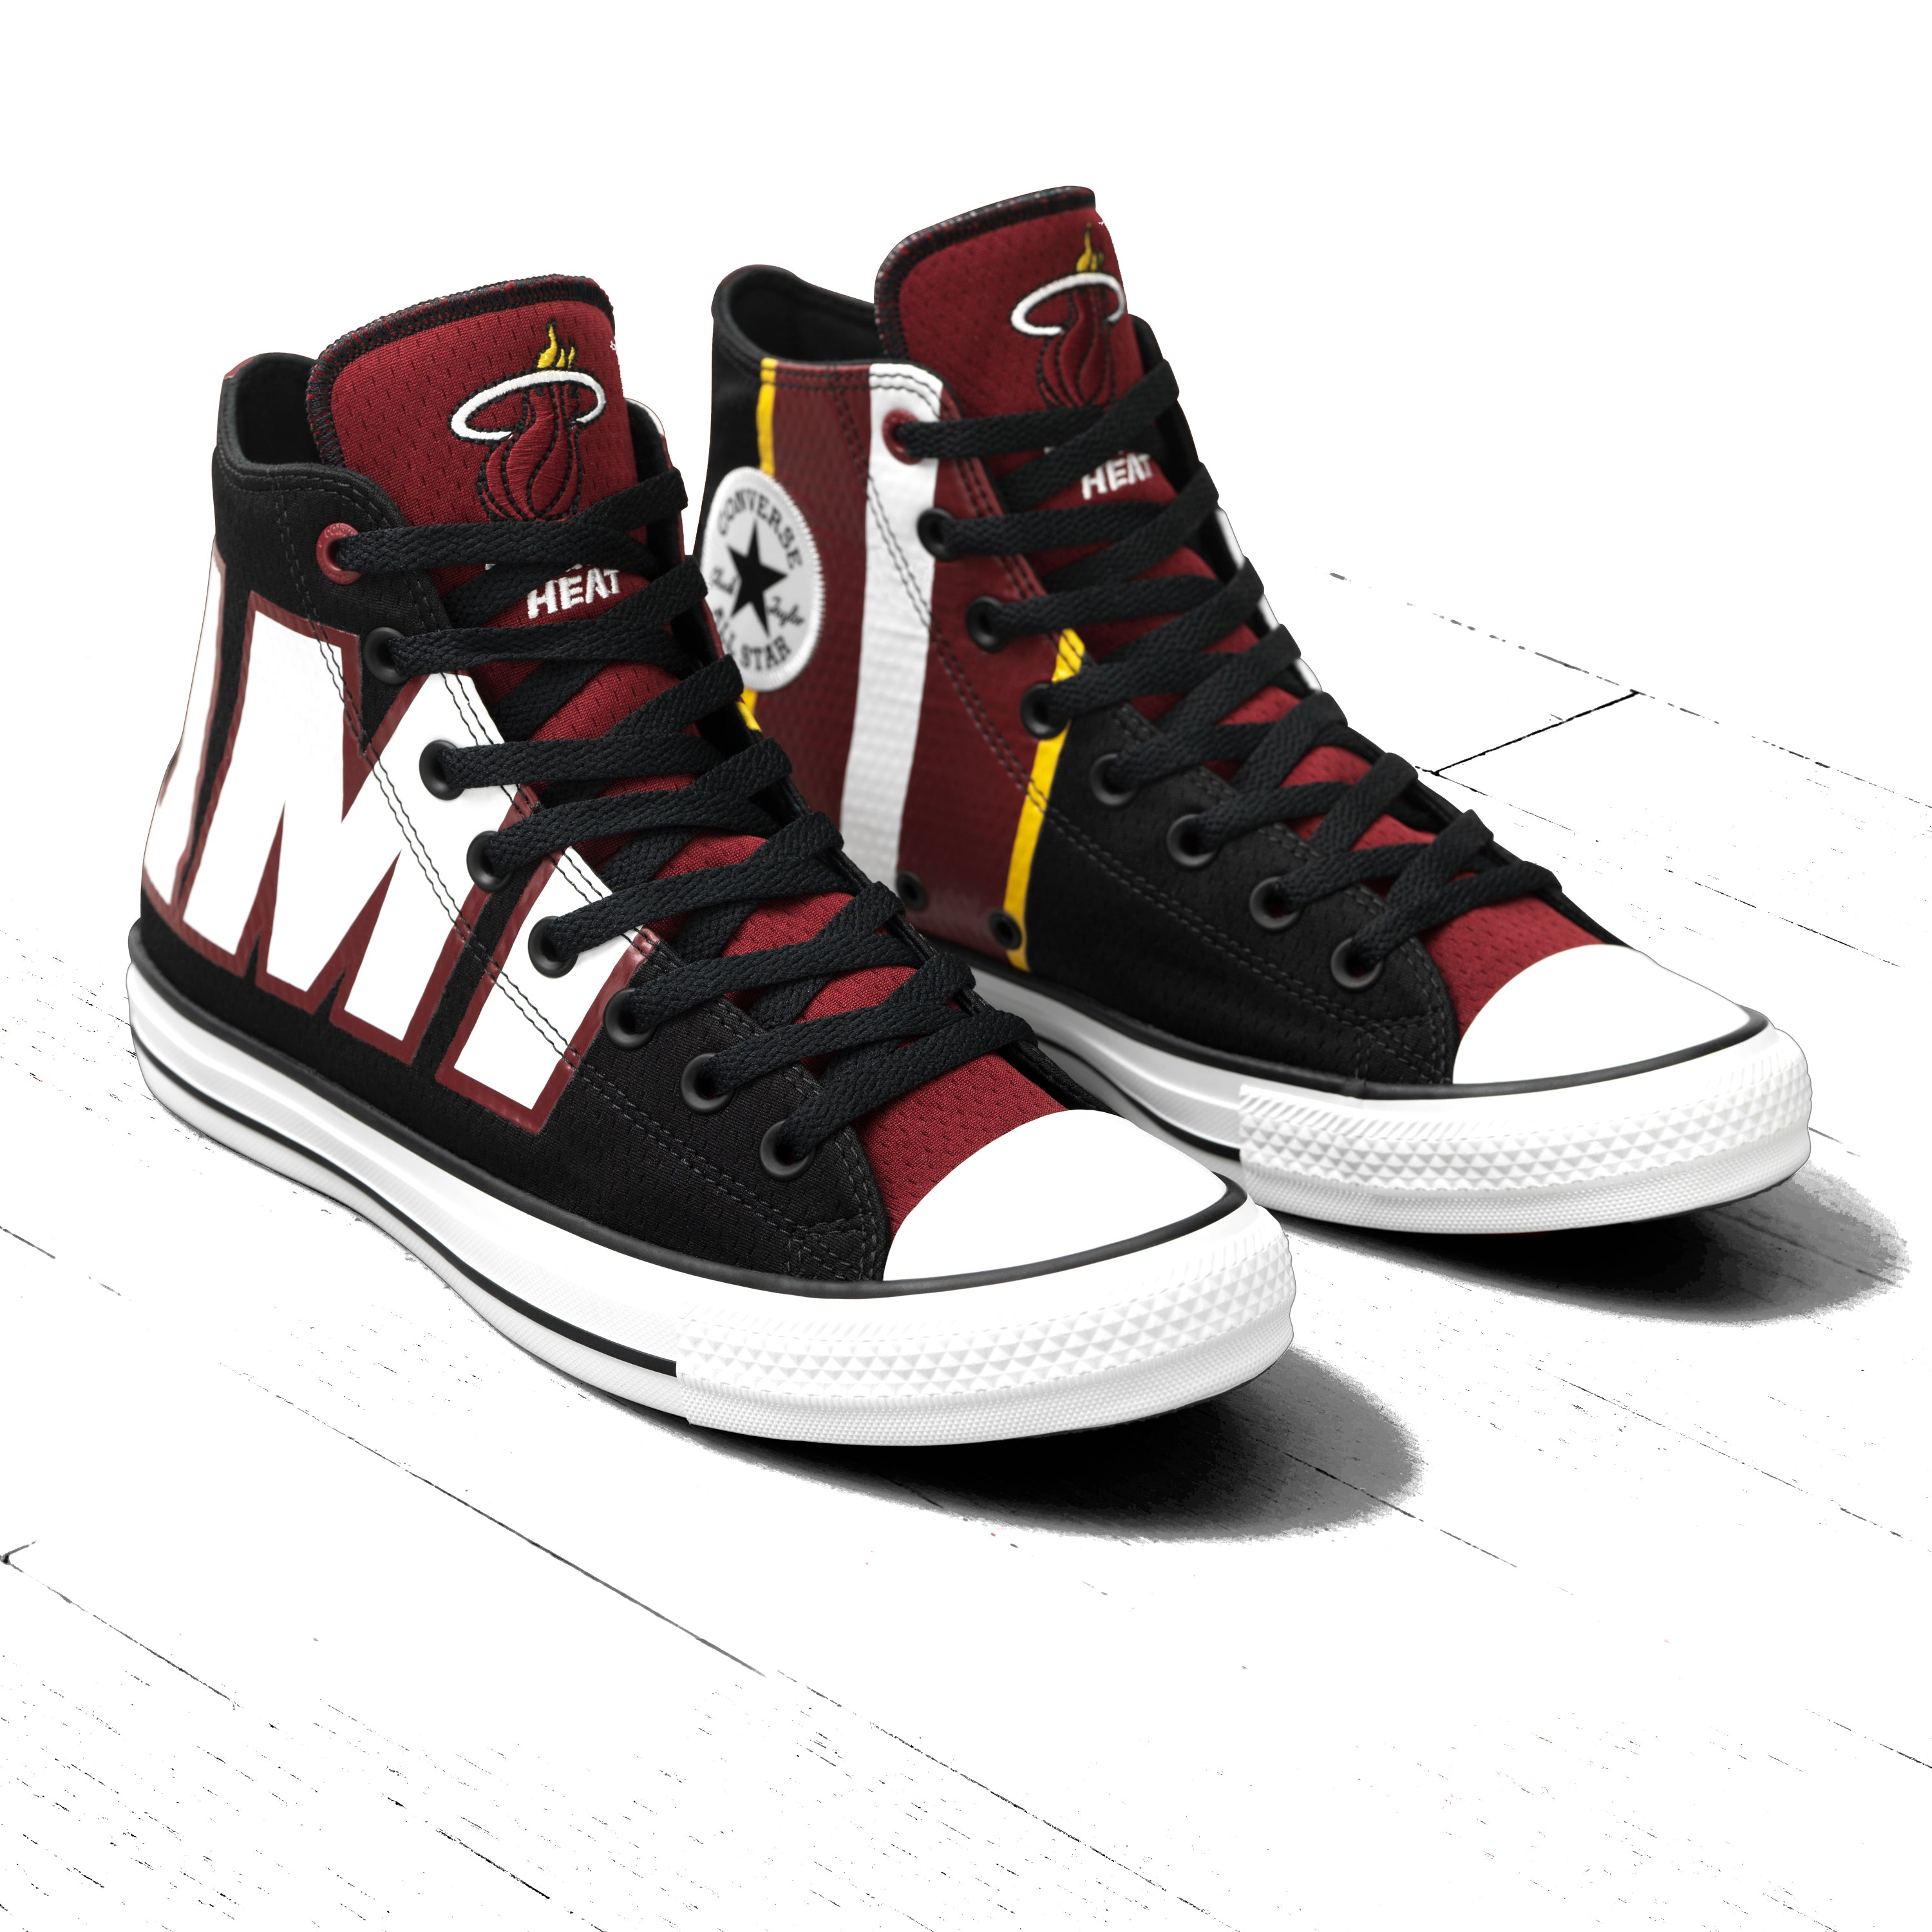 8e4fee1e2e0129 Converse Miami HEAT Hightops – Miami HEAT Store